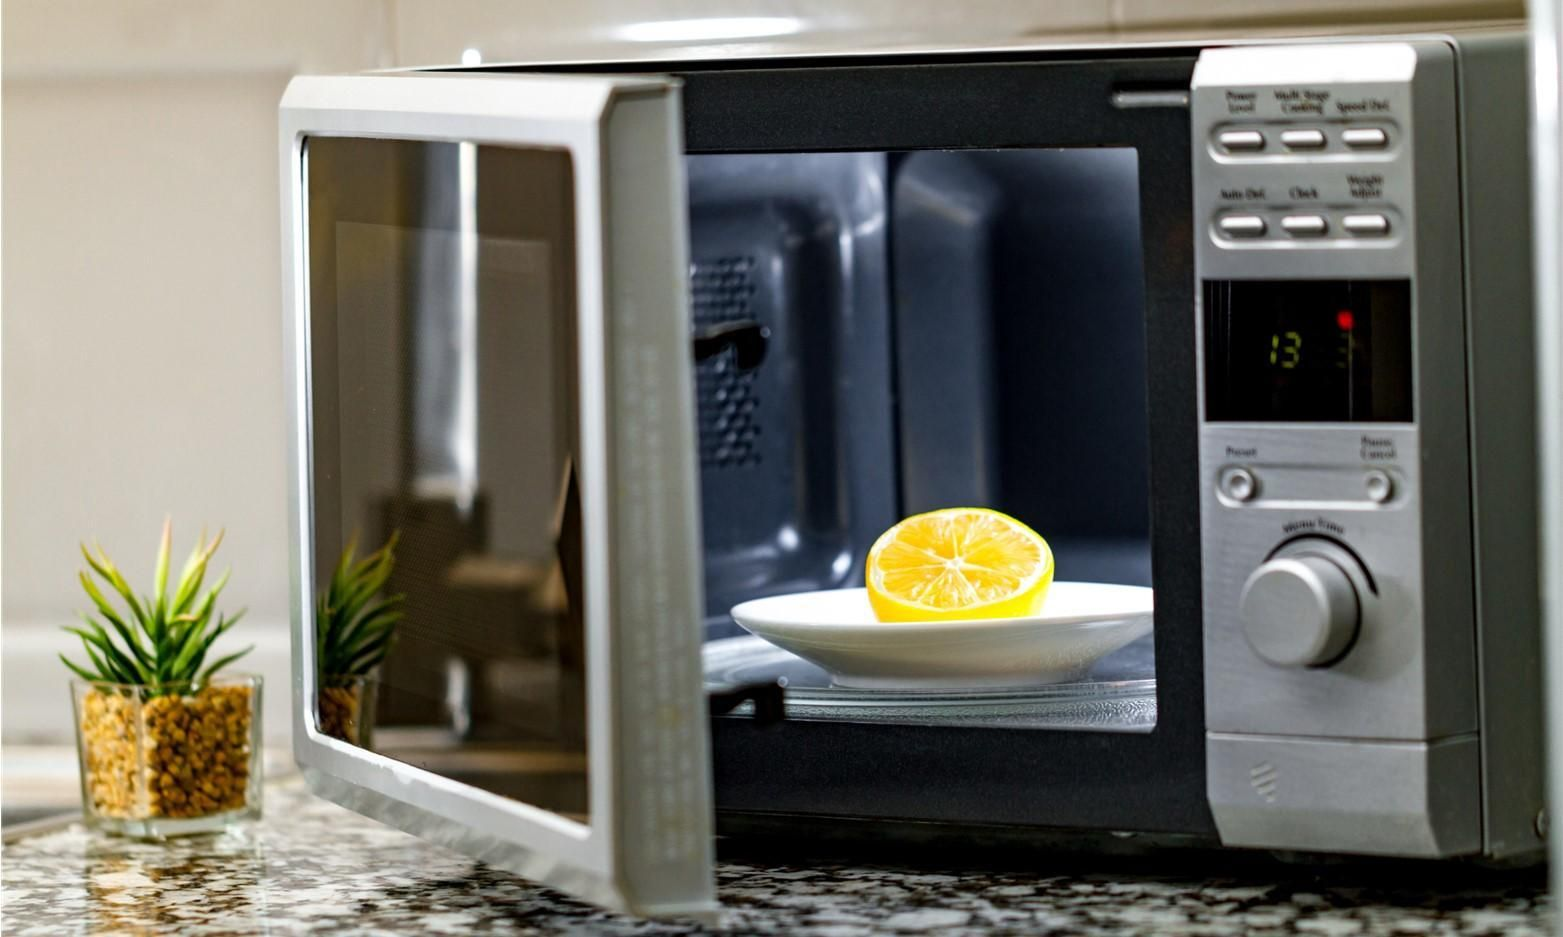 How to Deep Clean your Microwave the Natural Way